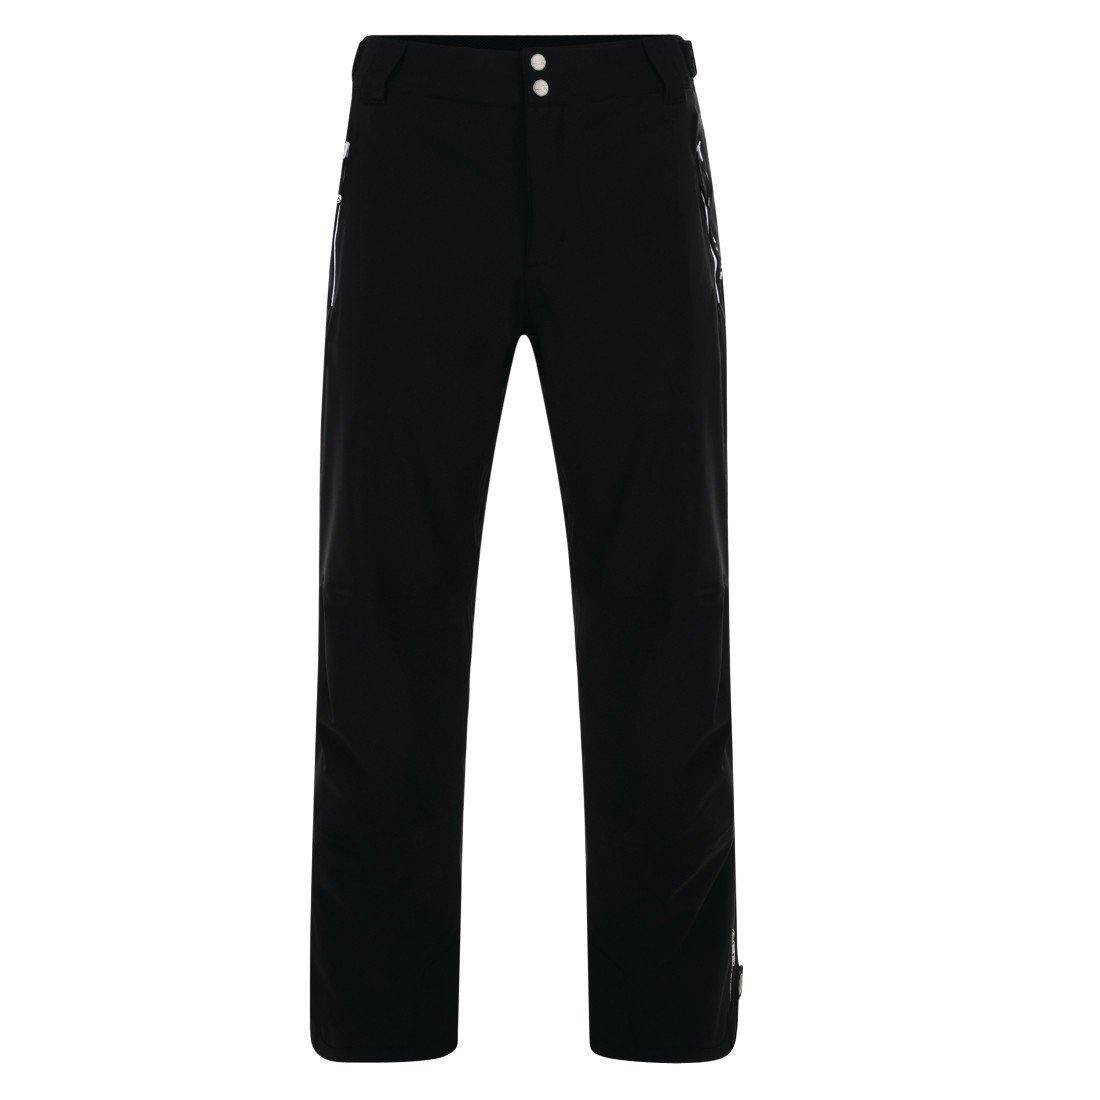 Dare 2b Men's Stand Firm Pant